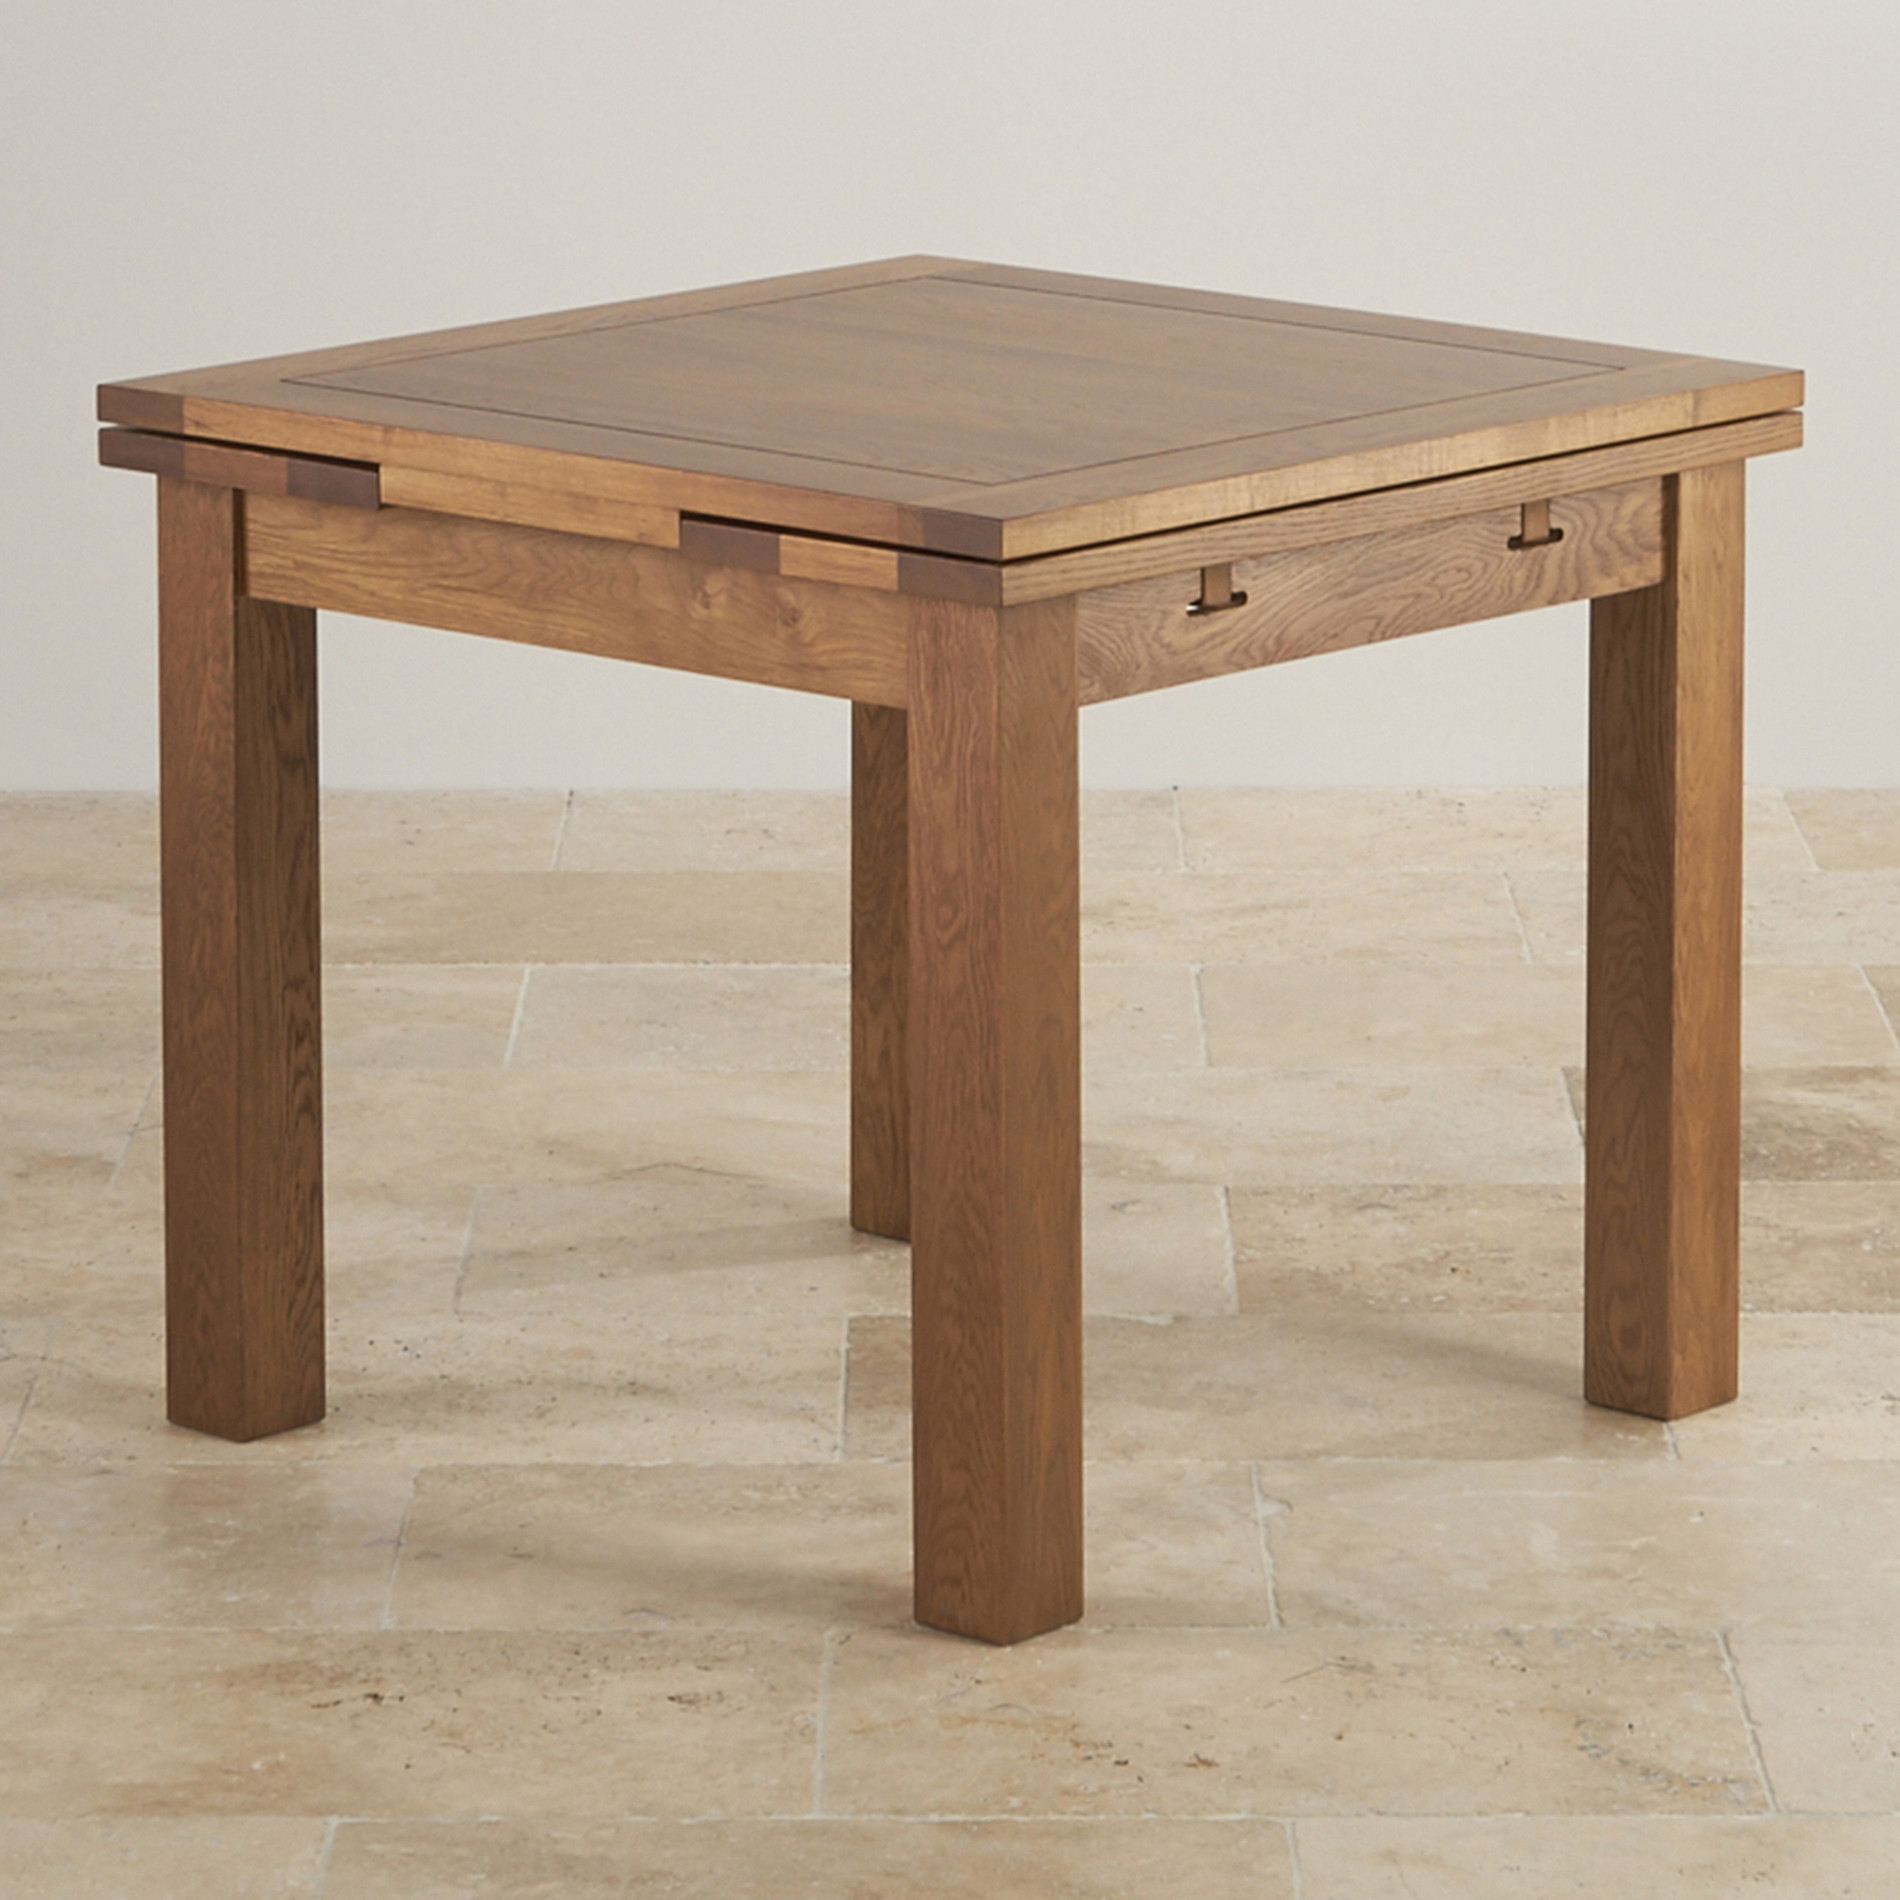 Rustic Extendable Dining Table – Palazzodalcarlo For Best And Newest Blackened Oak Benchwright Extending Dining Tables (View 10 of 25)